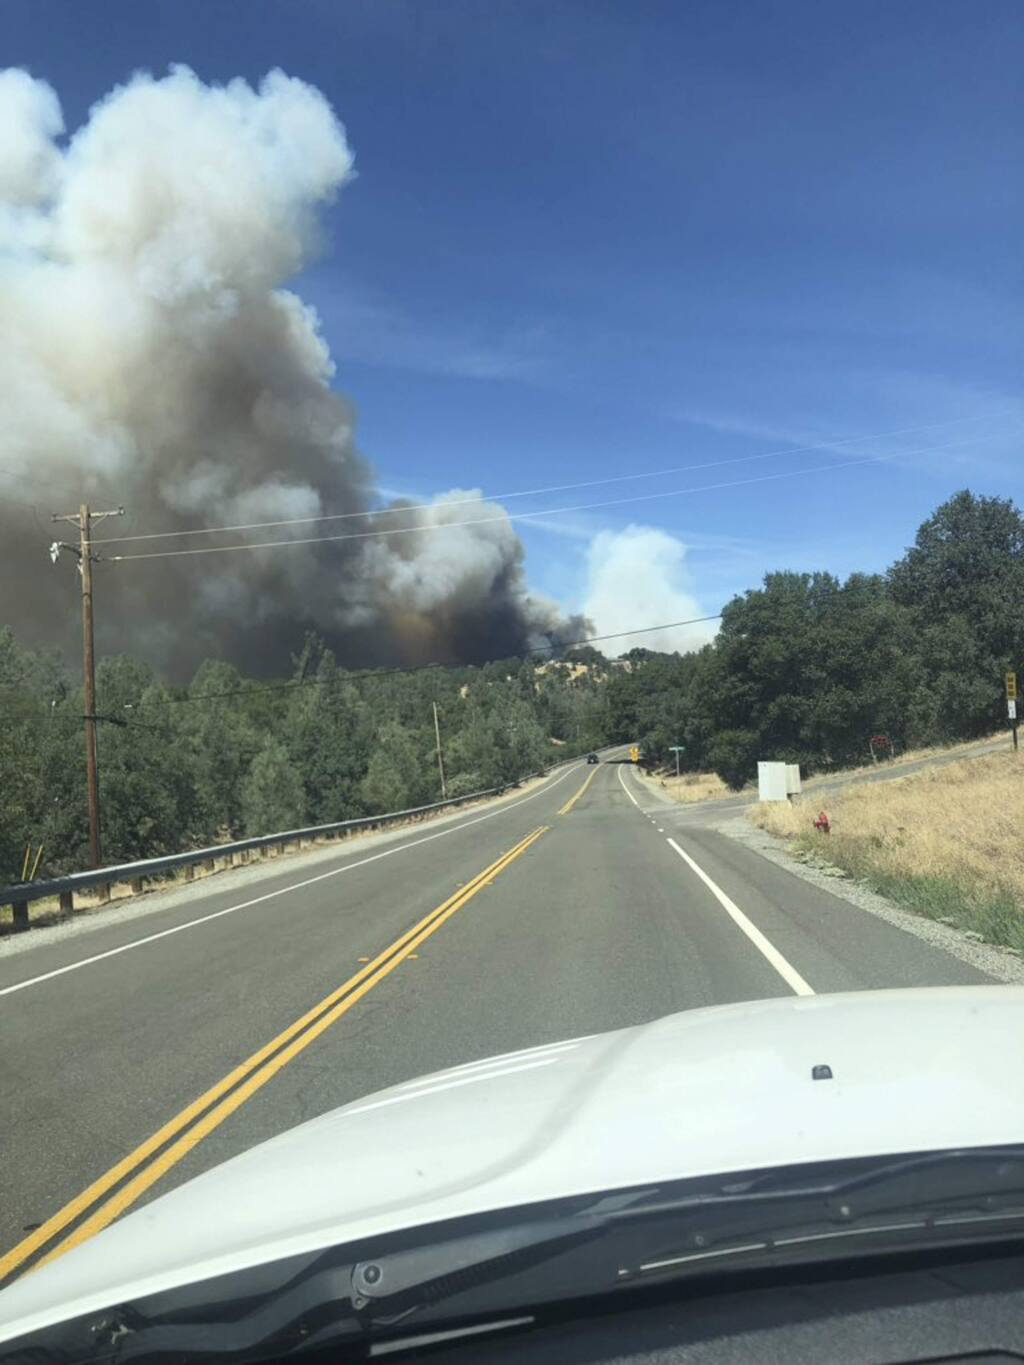 This photo provided by Cal Fire shows the Mountain fire burning Thursday, Aug. 22, 2019, near Redding, Calif. (Cal Fire via AP)